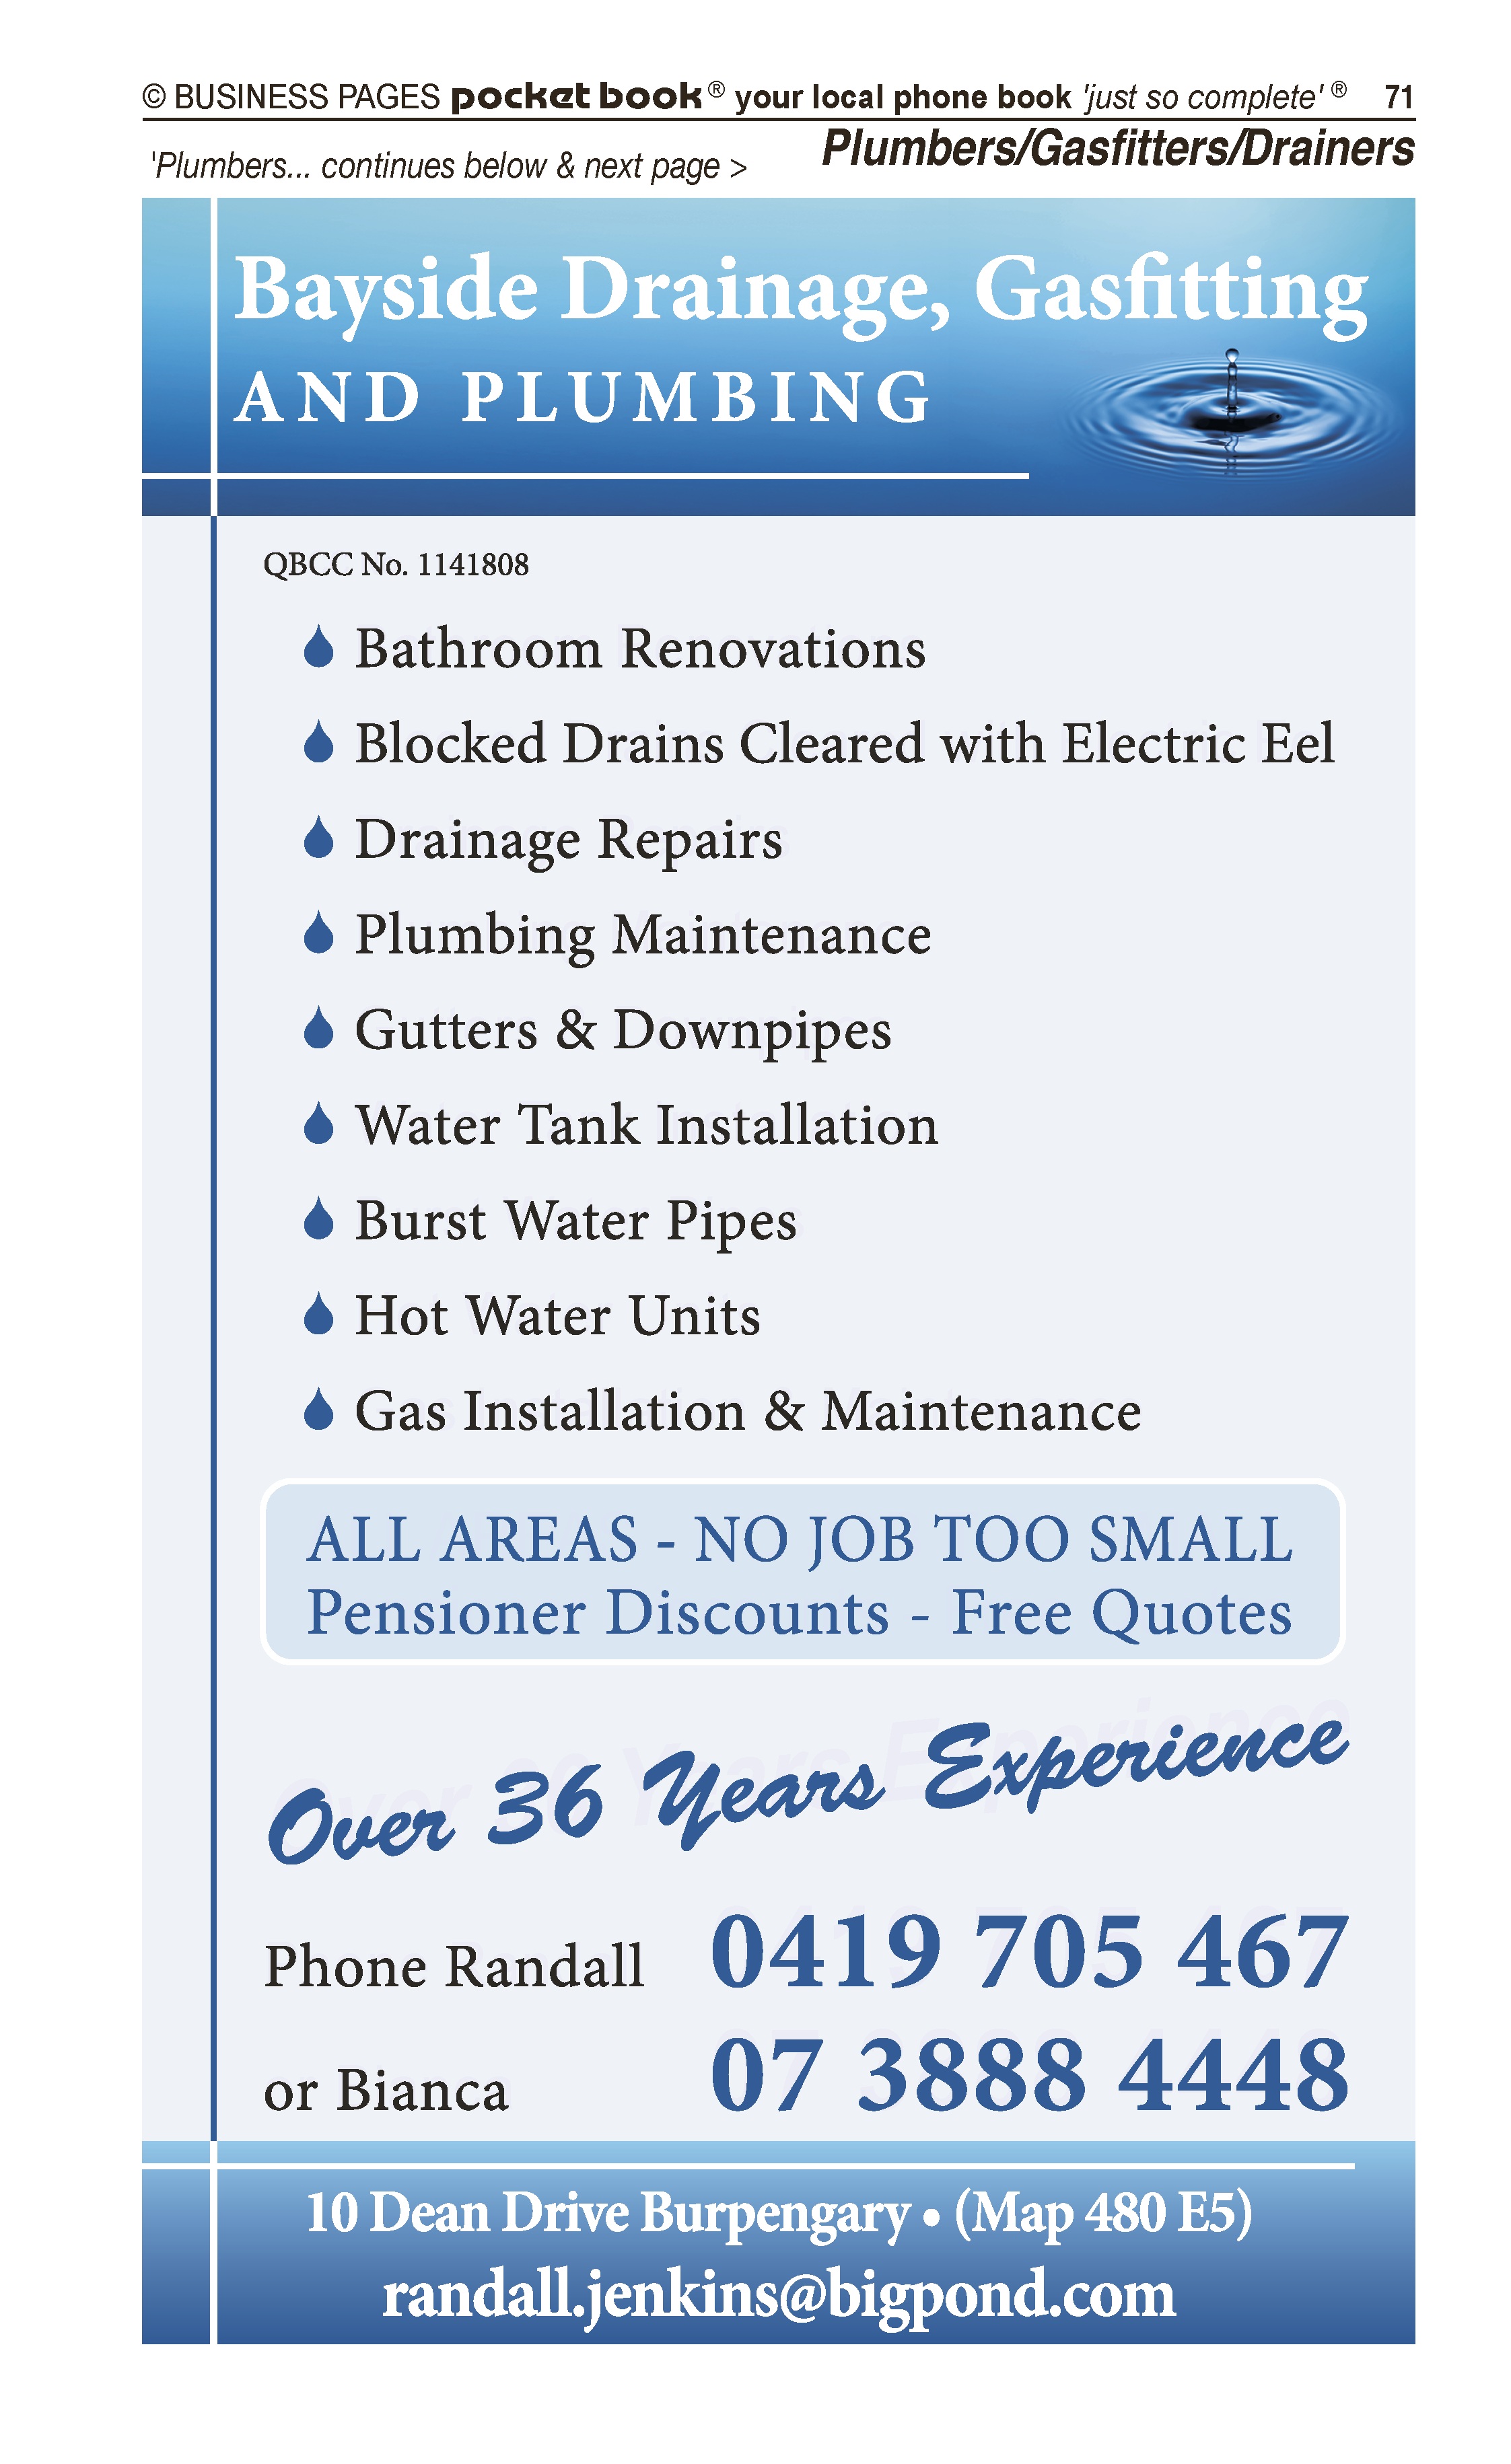 Caboolture & District Septic Cleaning | Septic Tank – Cleaning in Caboolture | PBezy Pocket Books local directories - page 71